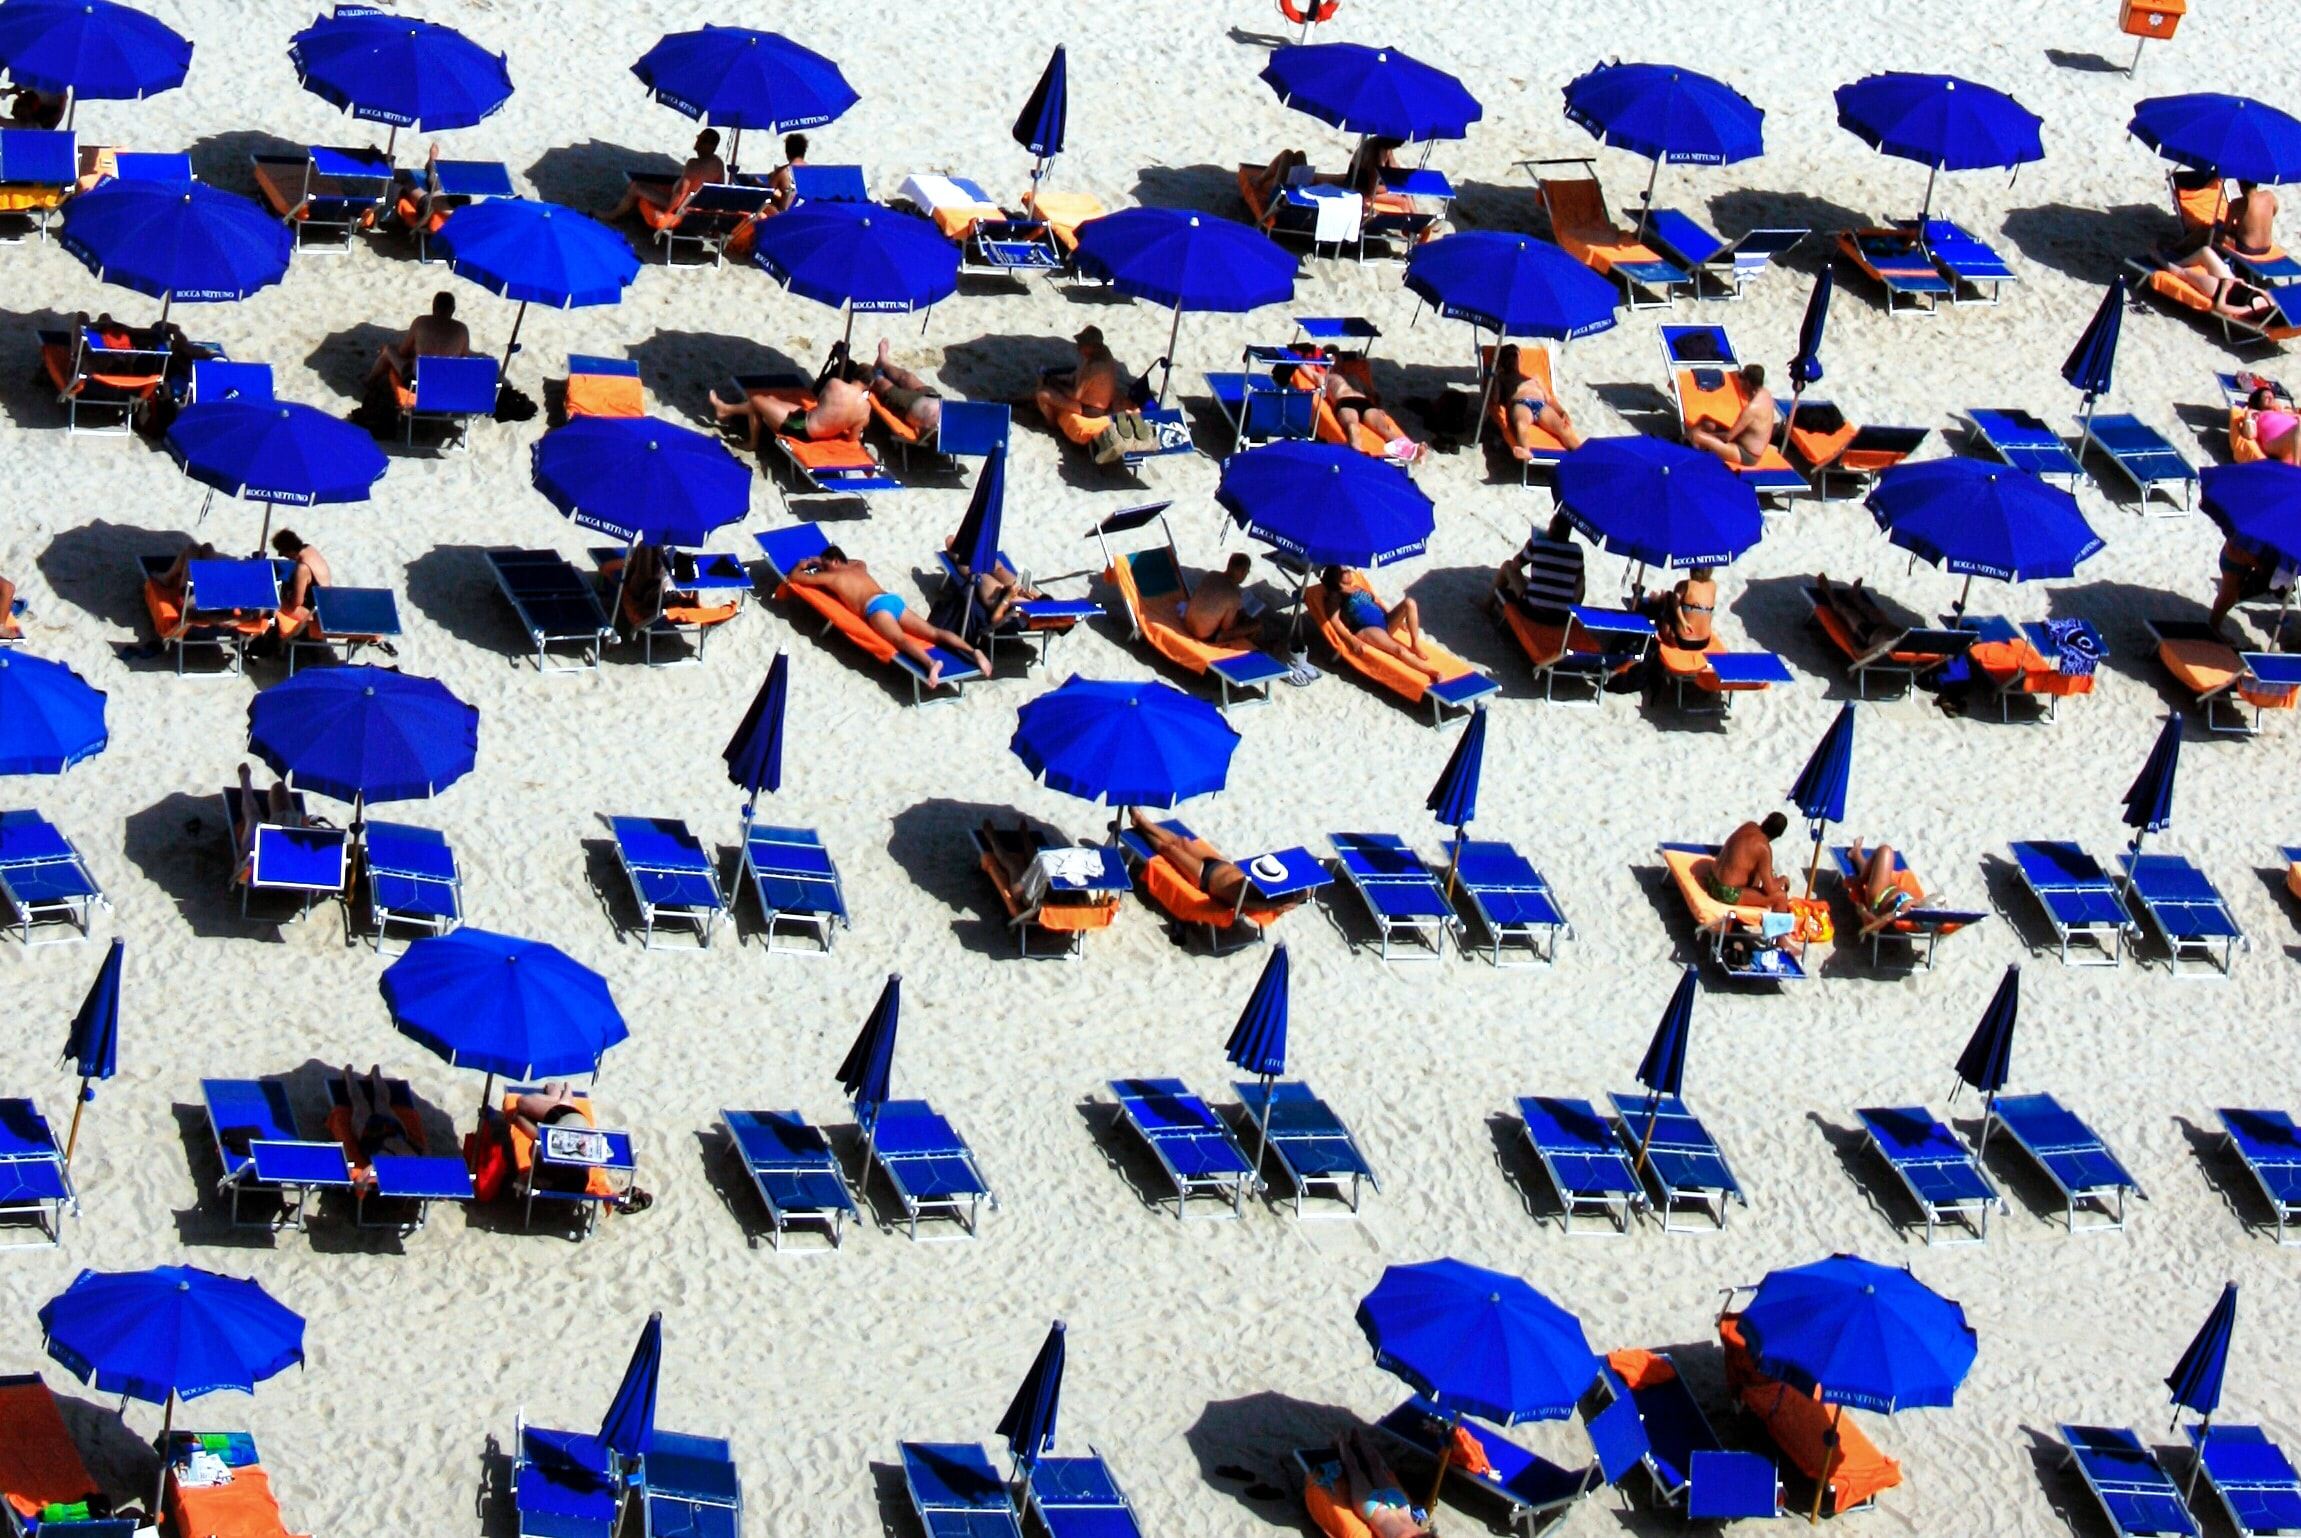 aerial photo of beach lounge chairs and umbrellas